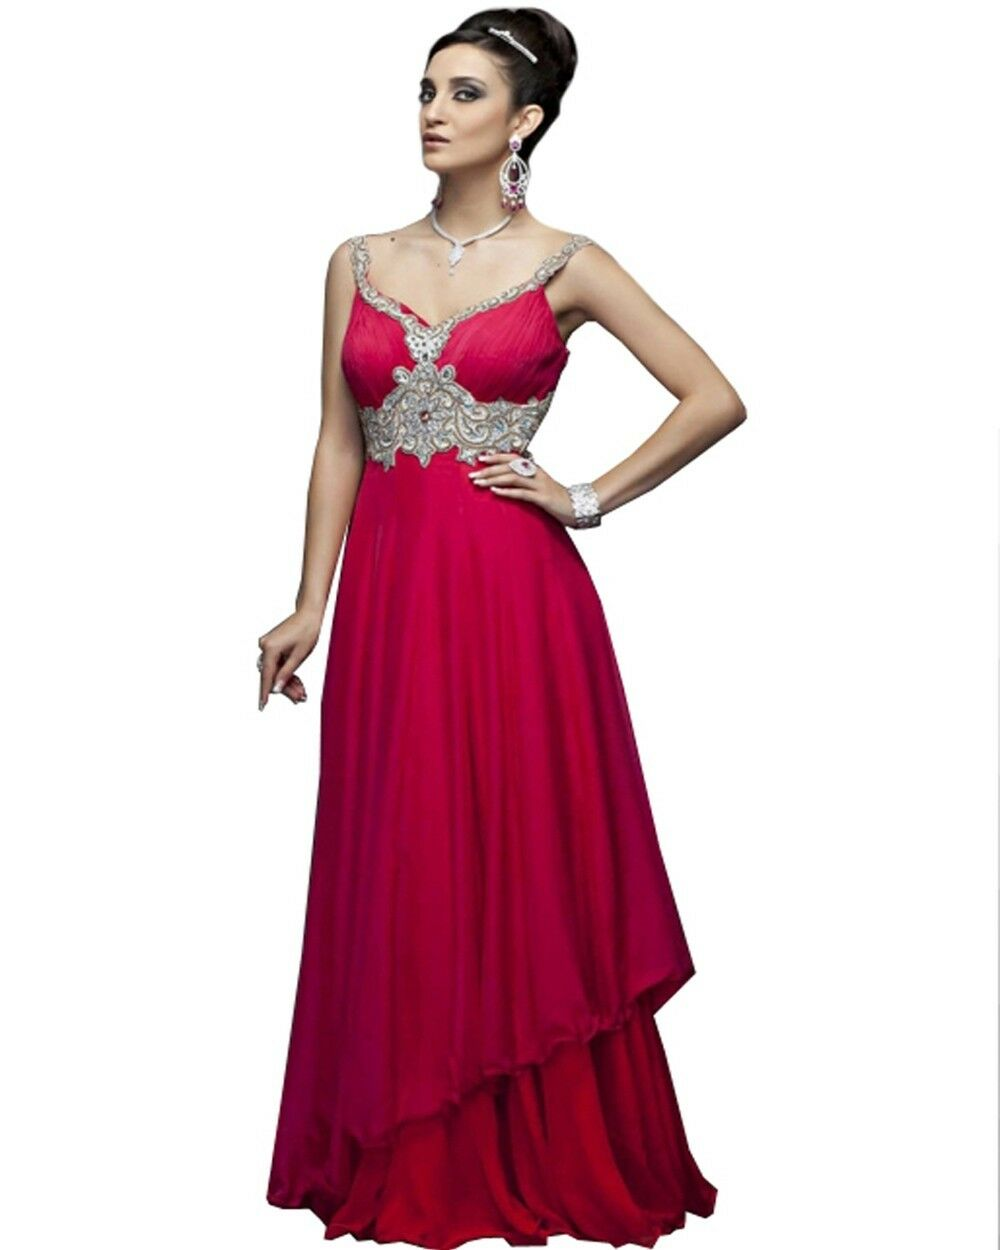 Couture Designer Pink Party Dress